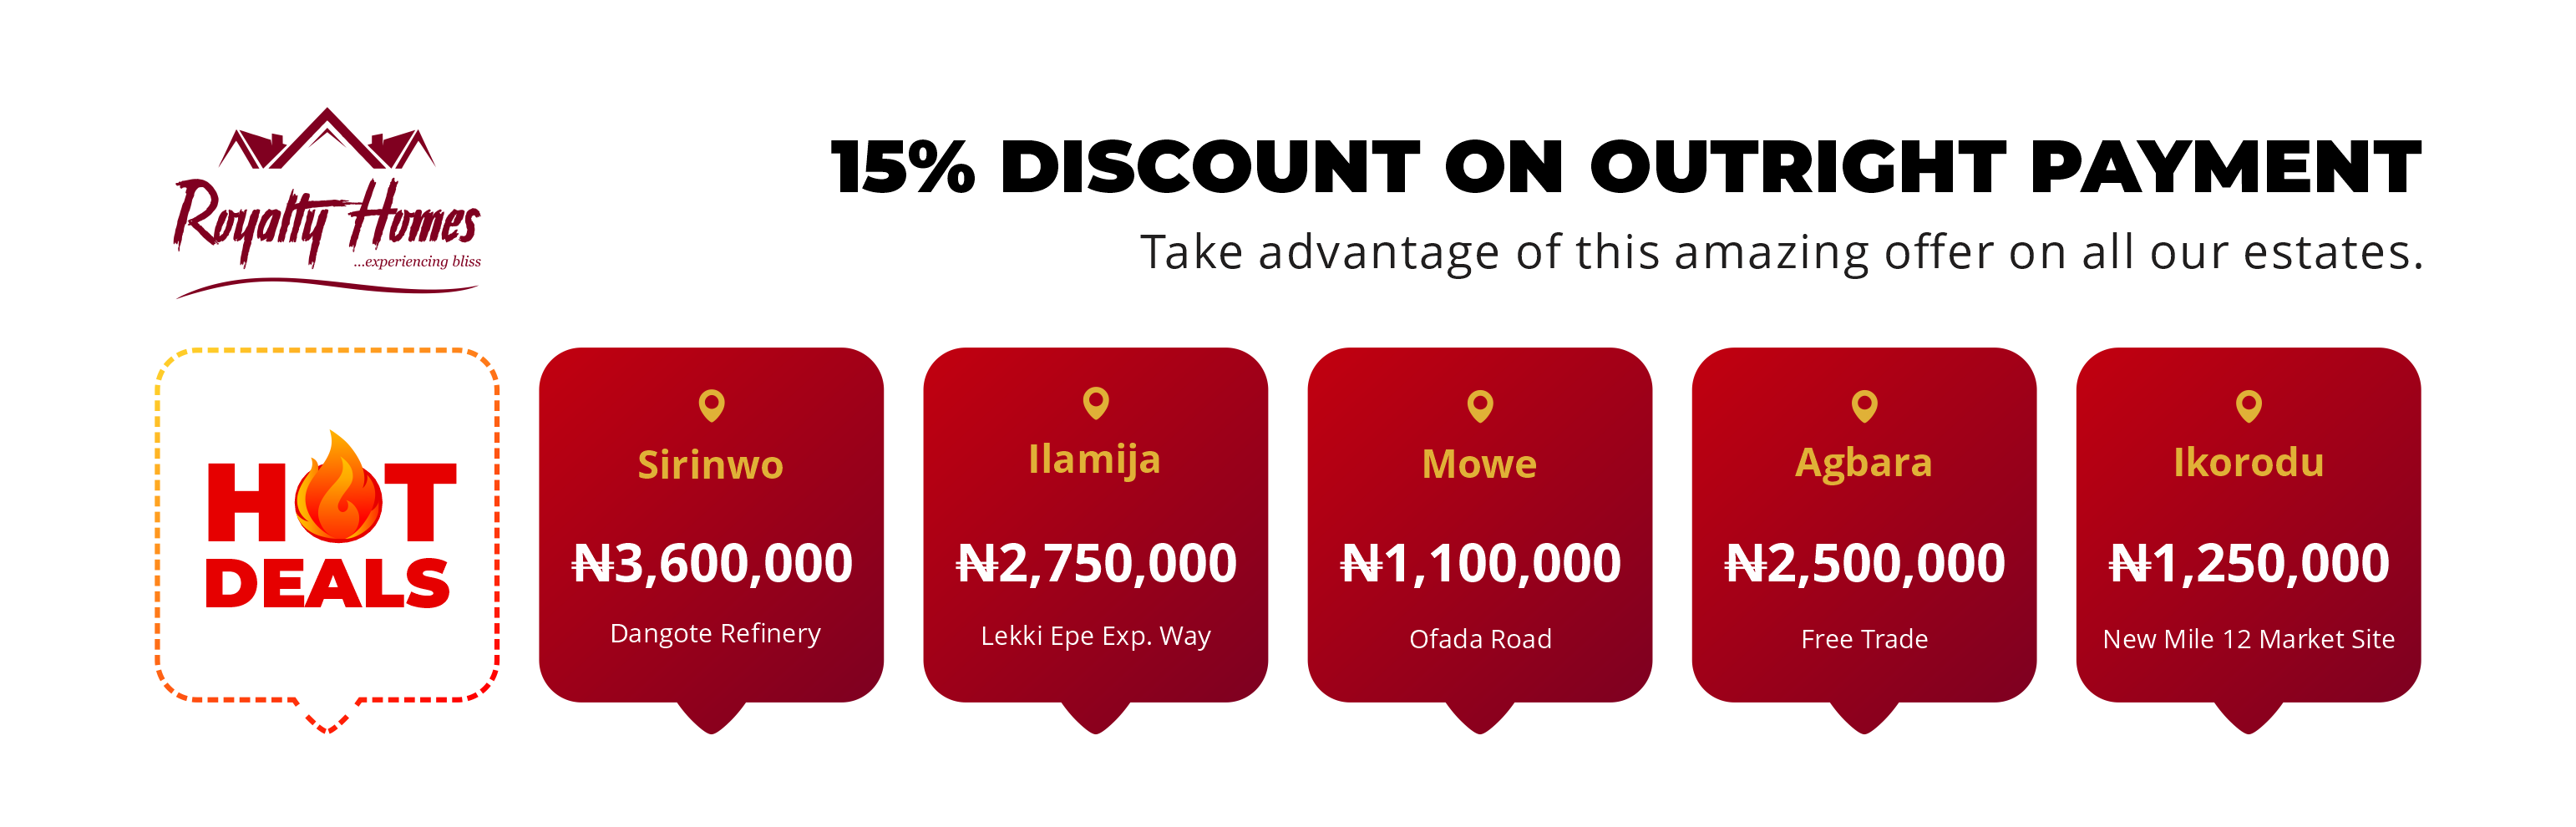 Royalty-Homes-Price-Discount-15%